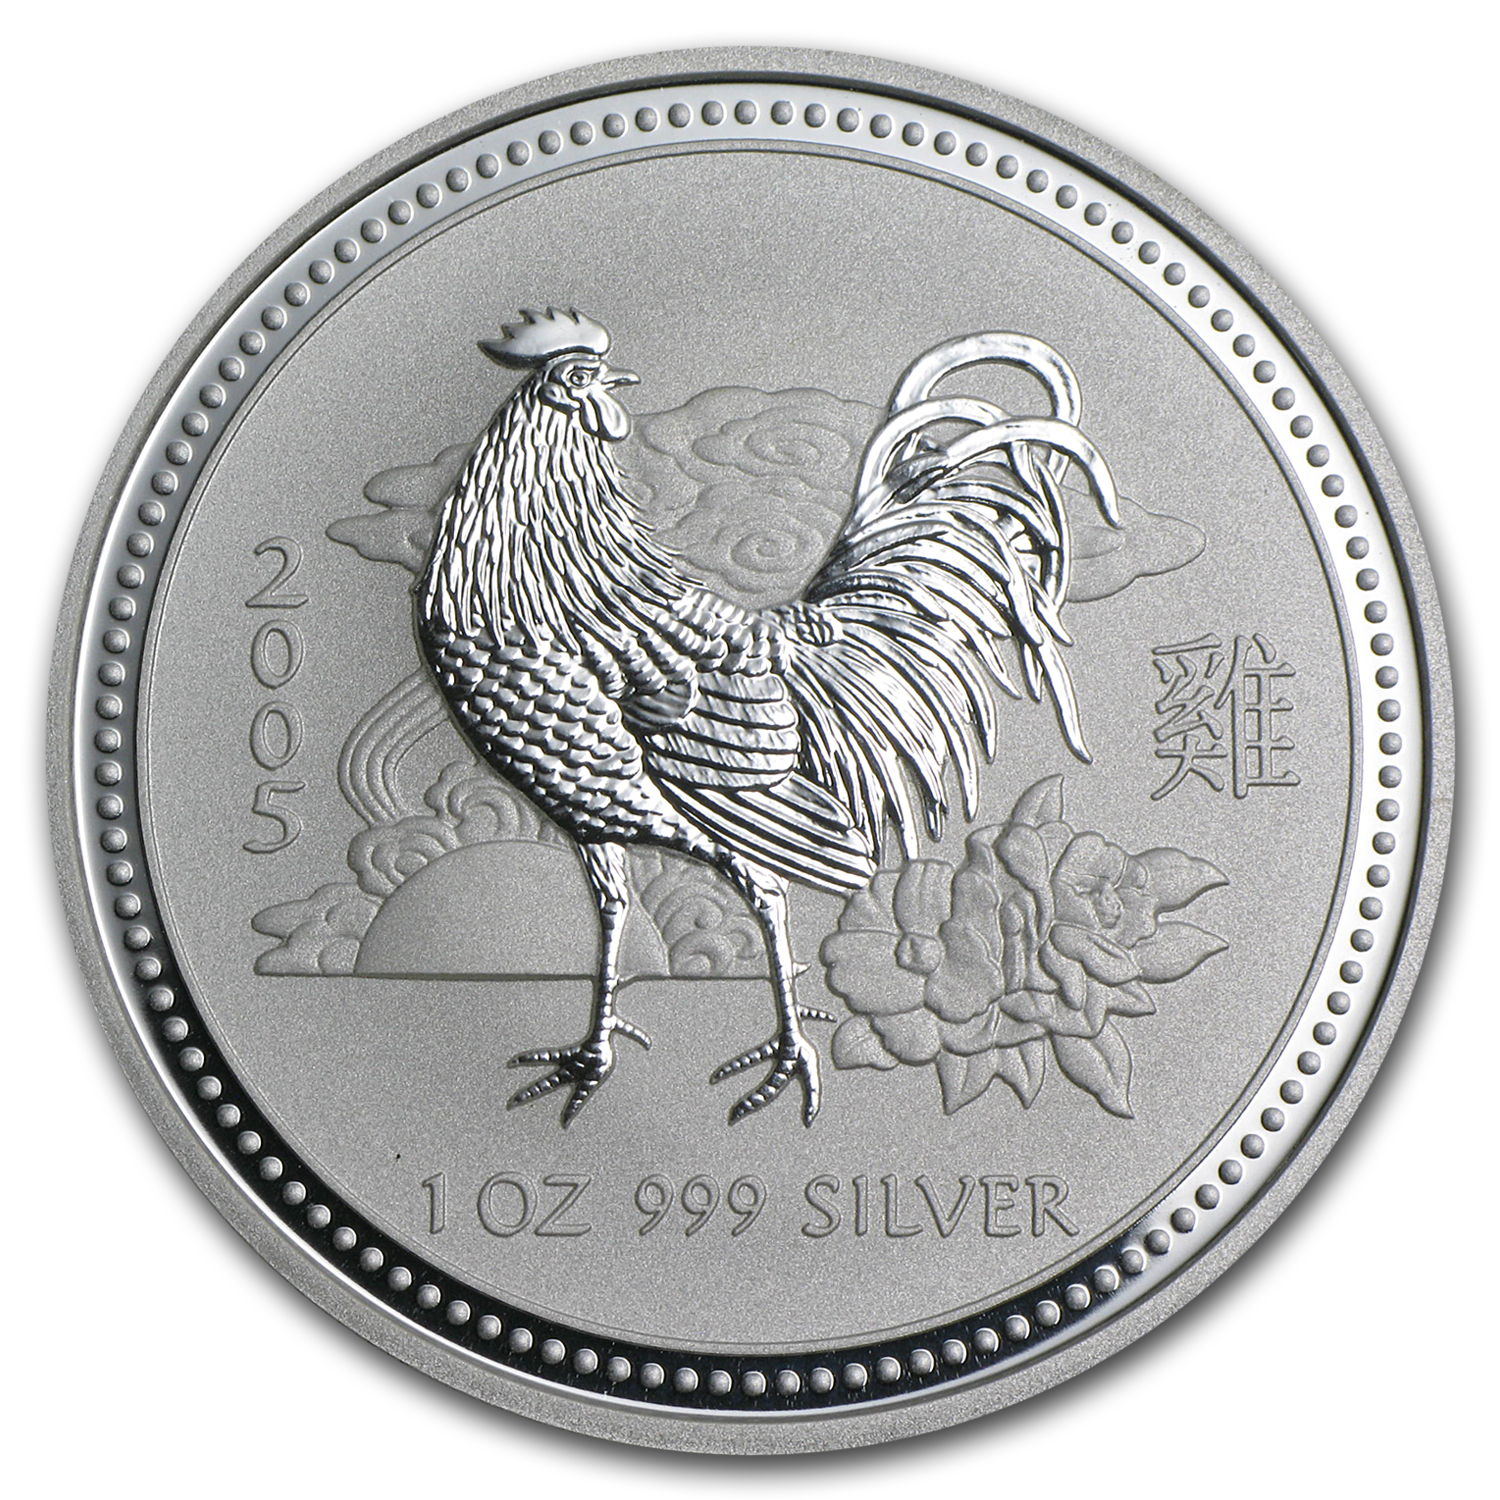 2005 Australia 1 oz Silver Year of the Rooster BU